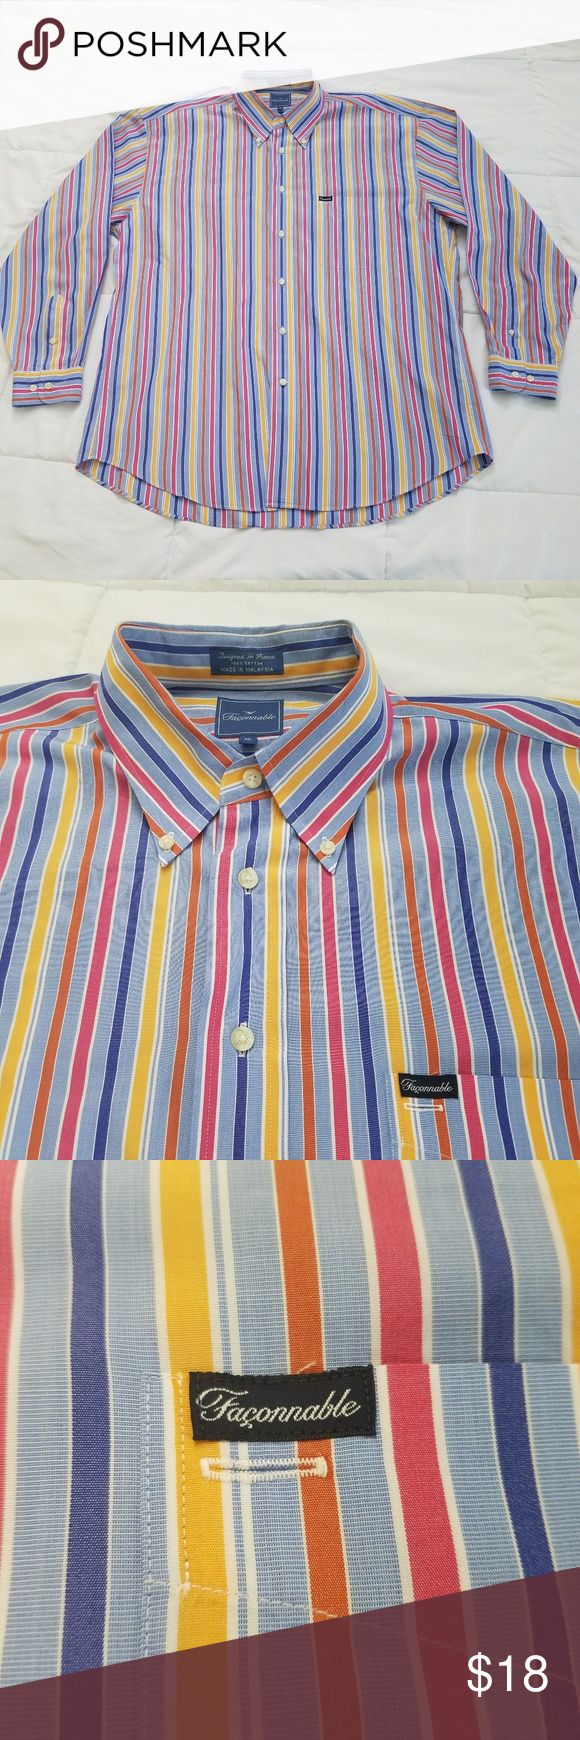 """Faconnable Dress Shirt Men's XL Stripes Good Used Condition  Faconnable Multicolor Striped Dress Shirt Size: XL  Measurements are taken laid flat:  Pit to Pit - 26"""" Shoulder to Shoulder - 23"""" Shoulder to Cuff - 25""""  Shirt comes from a smoke and pet free home. Faconnable Shirts Dress Shirts"""